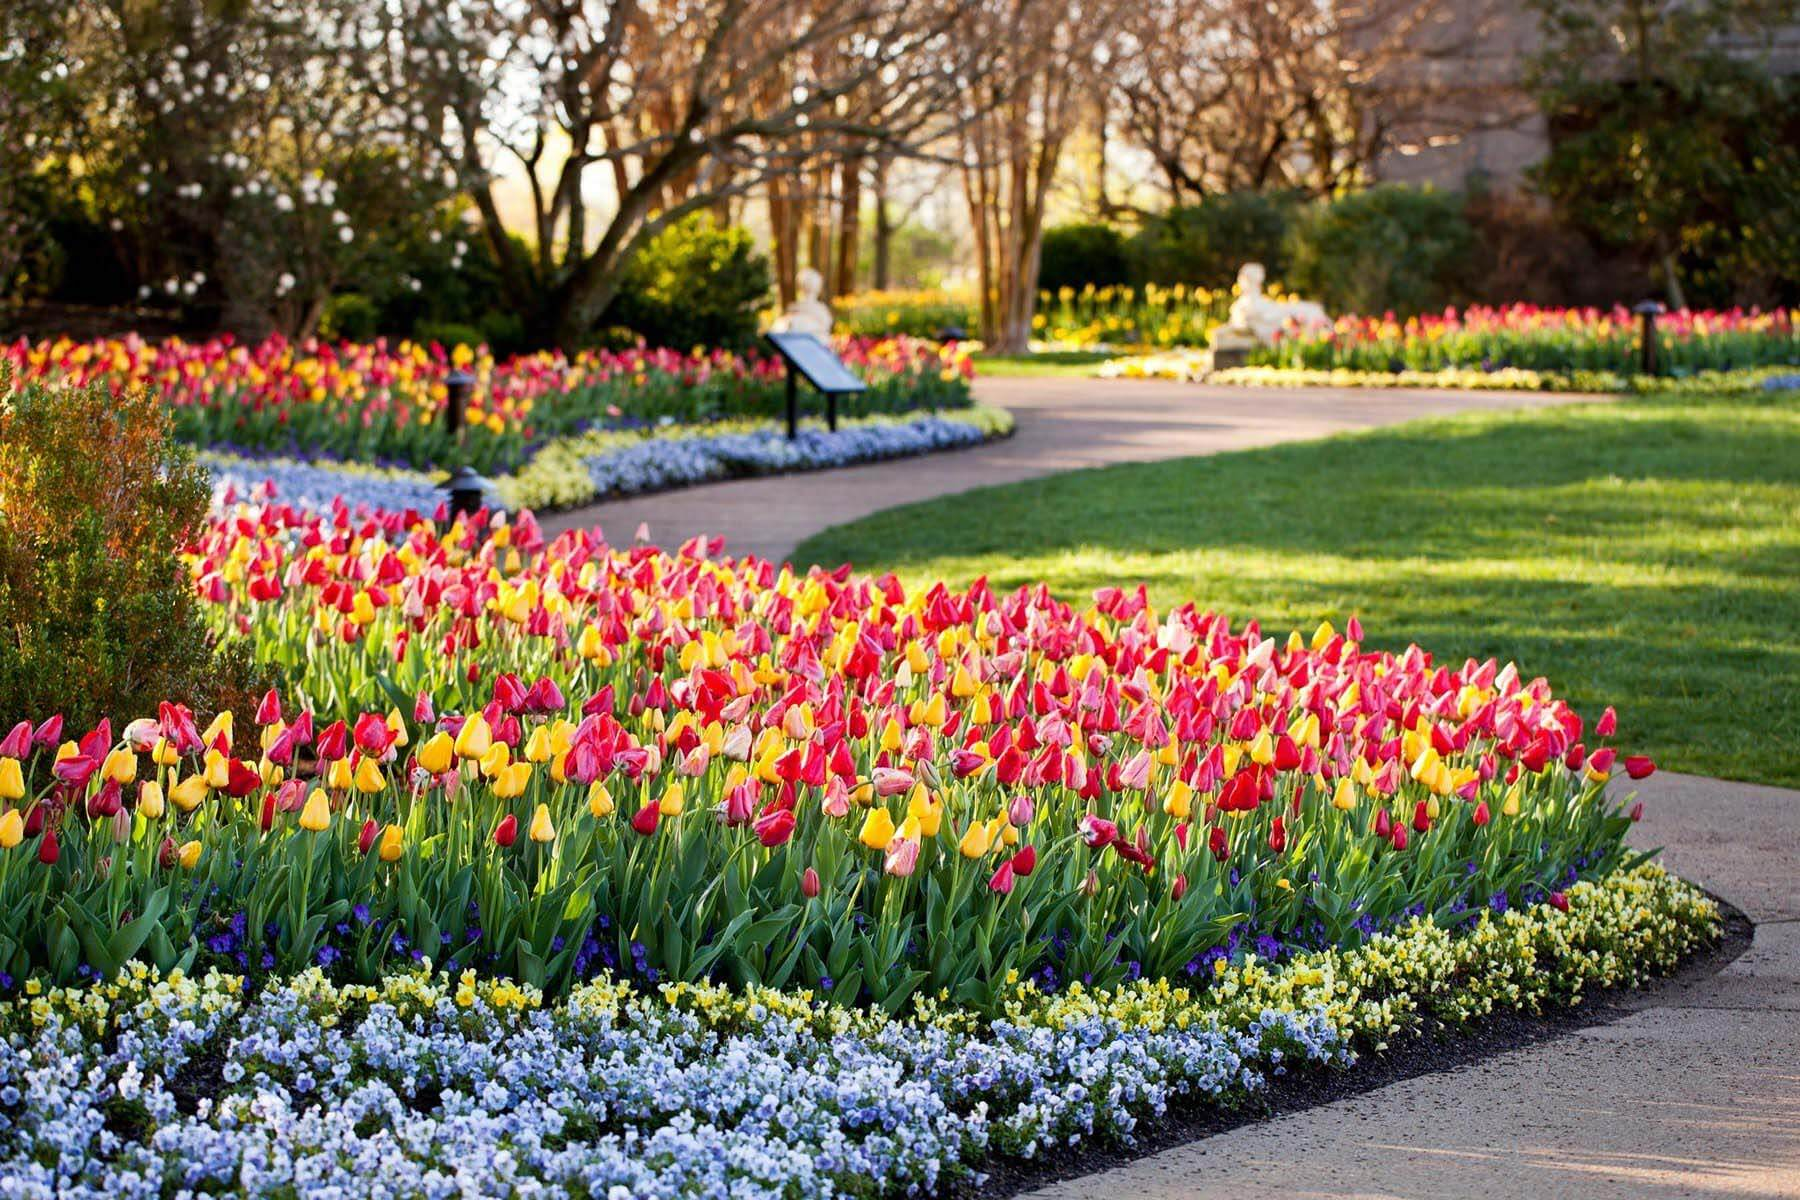 Cheekwood in Bloom, a Nashville March event